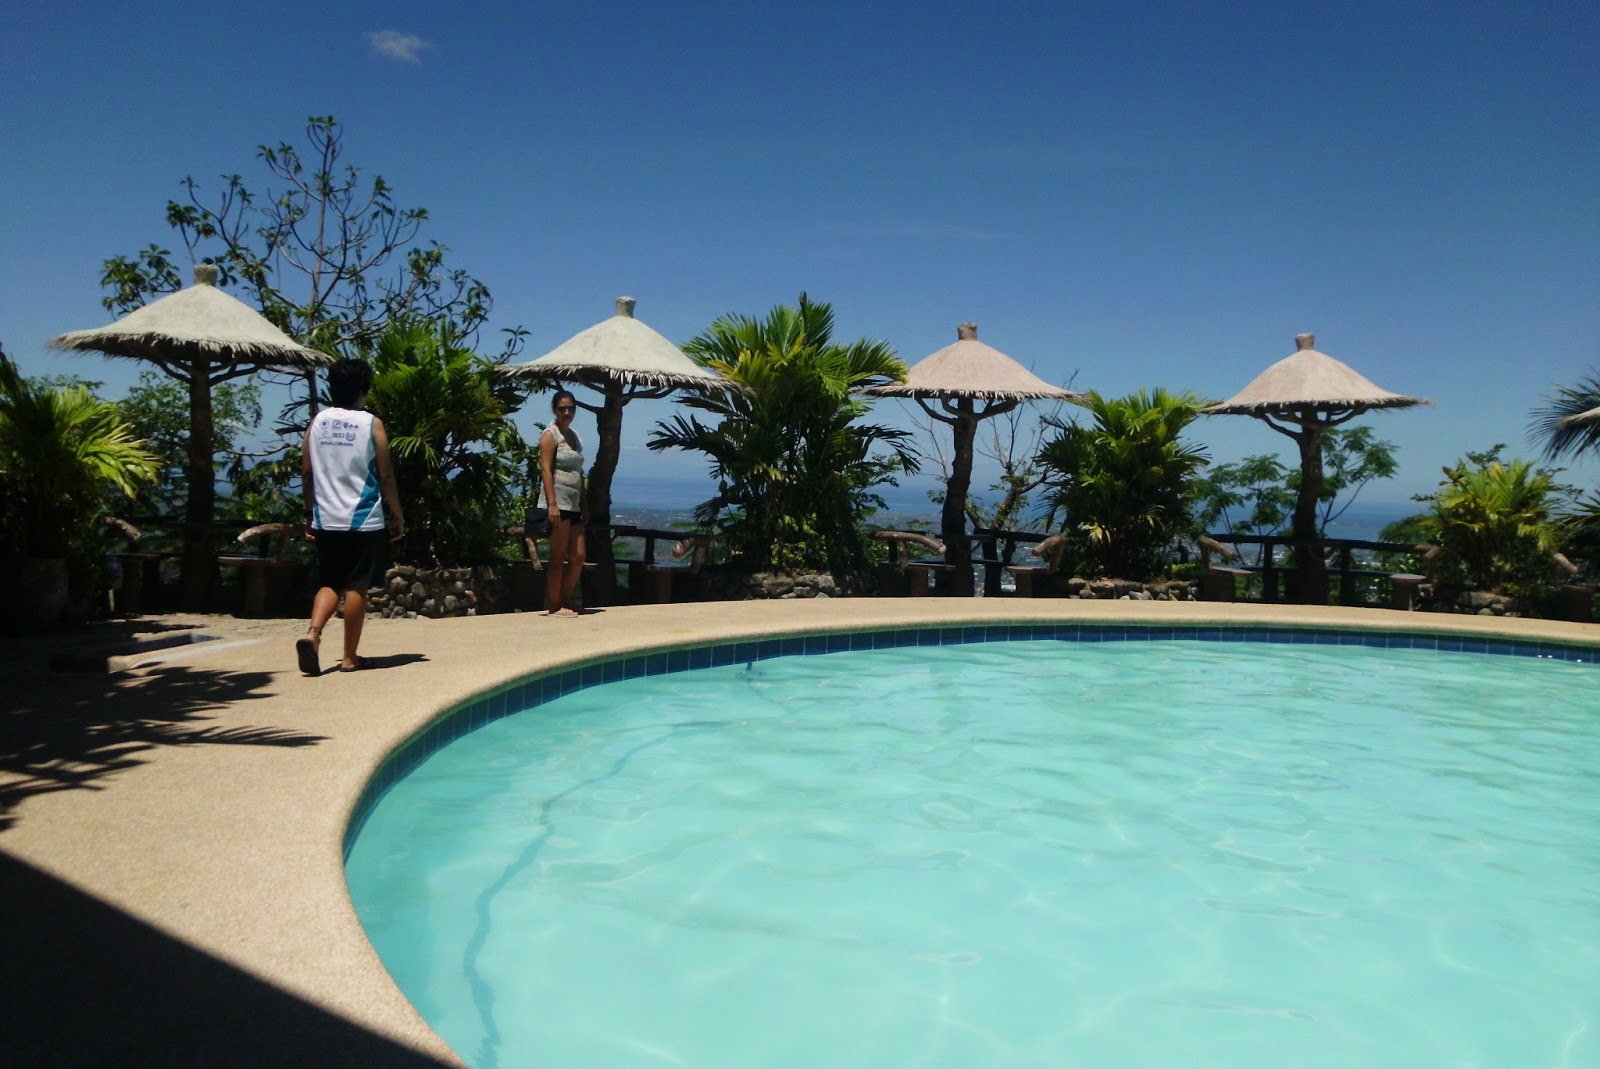 Lagalag Travel Guide Mountain View Cebu City How To Get There Where To Stay Eat What To Do